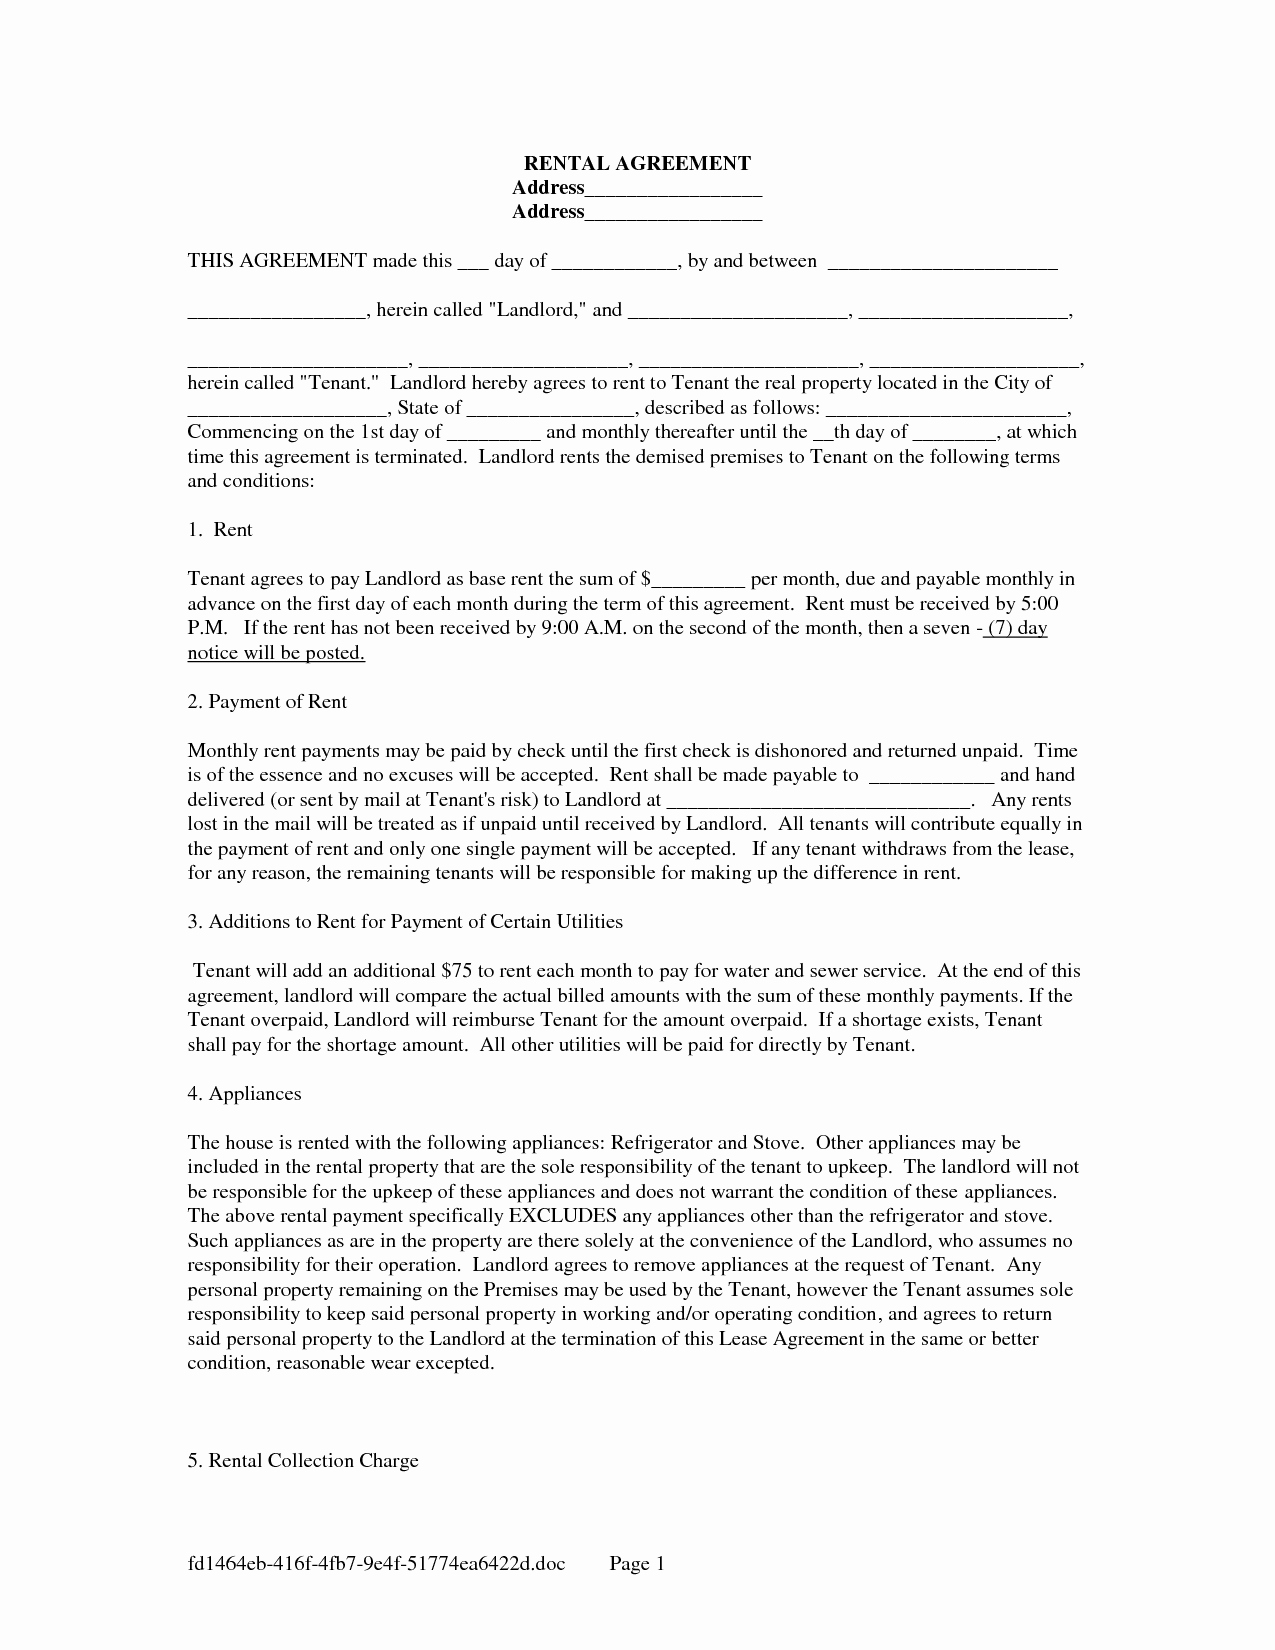 Car Payment Agreement Template – 2011 Requirements for